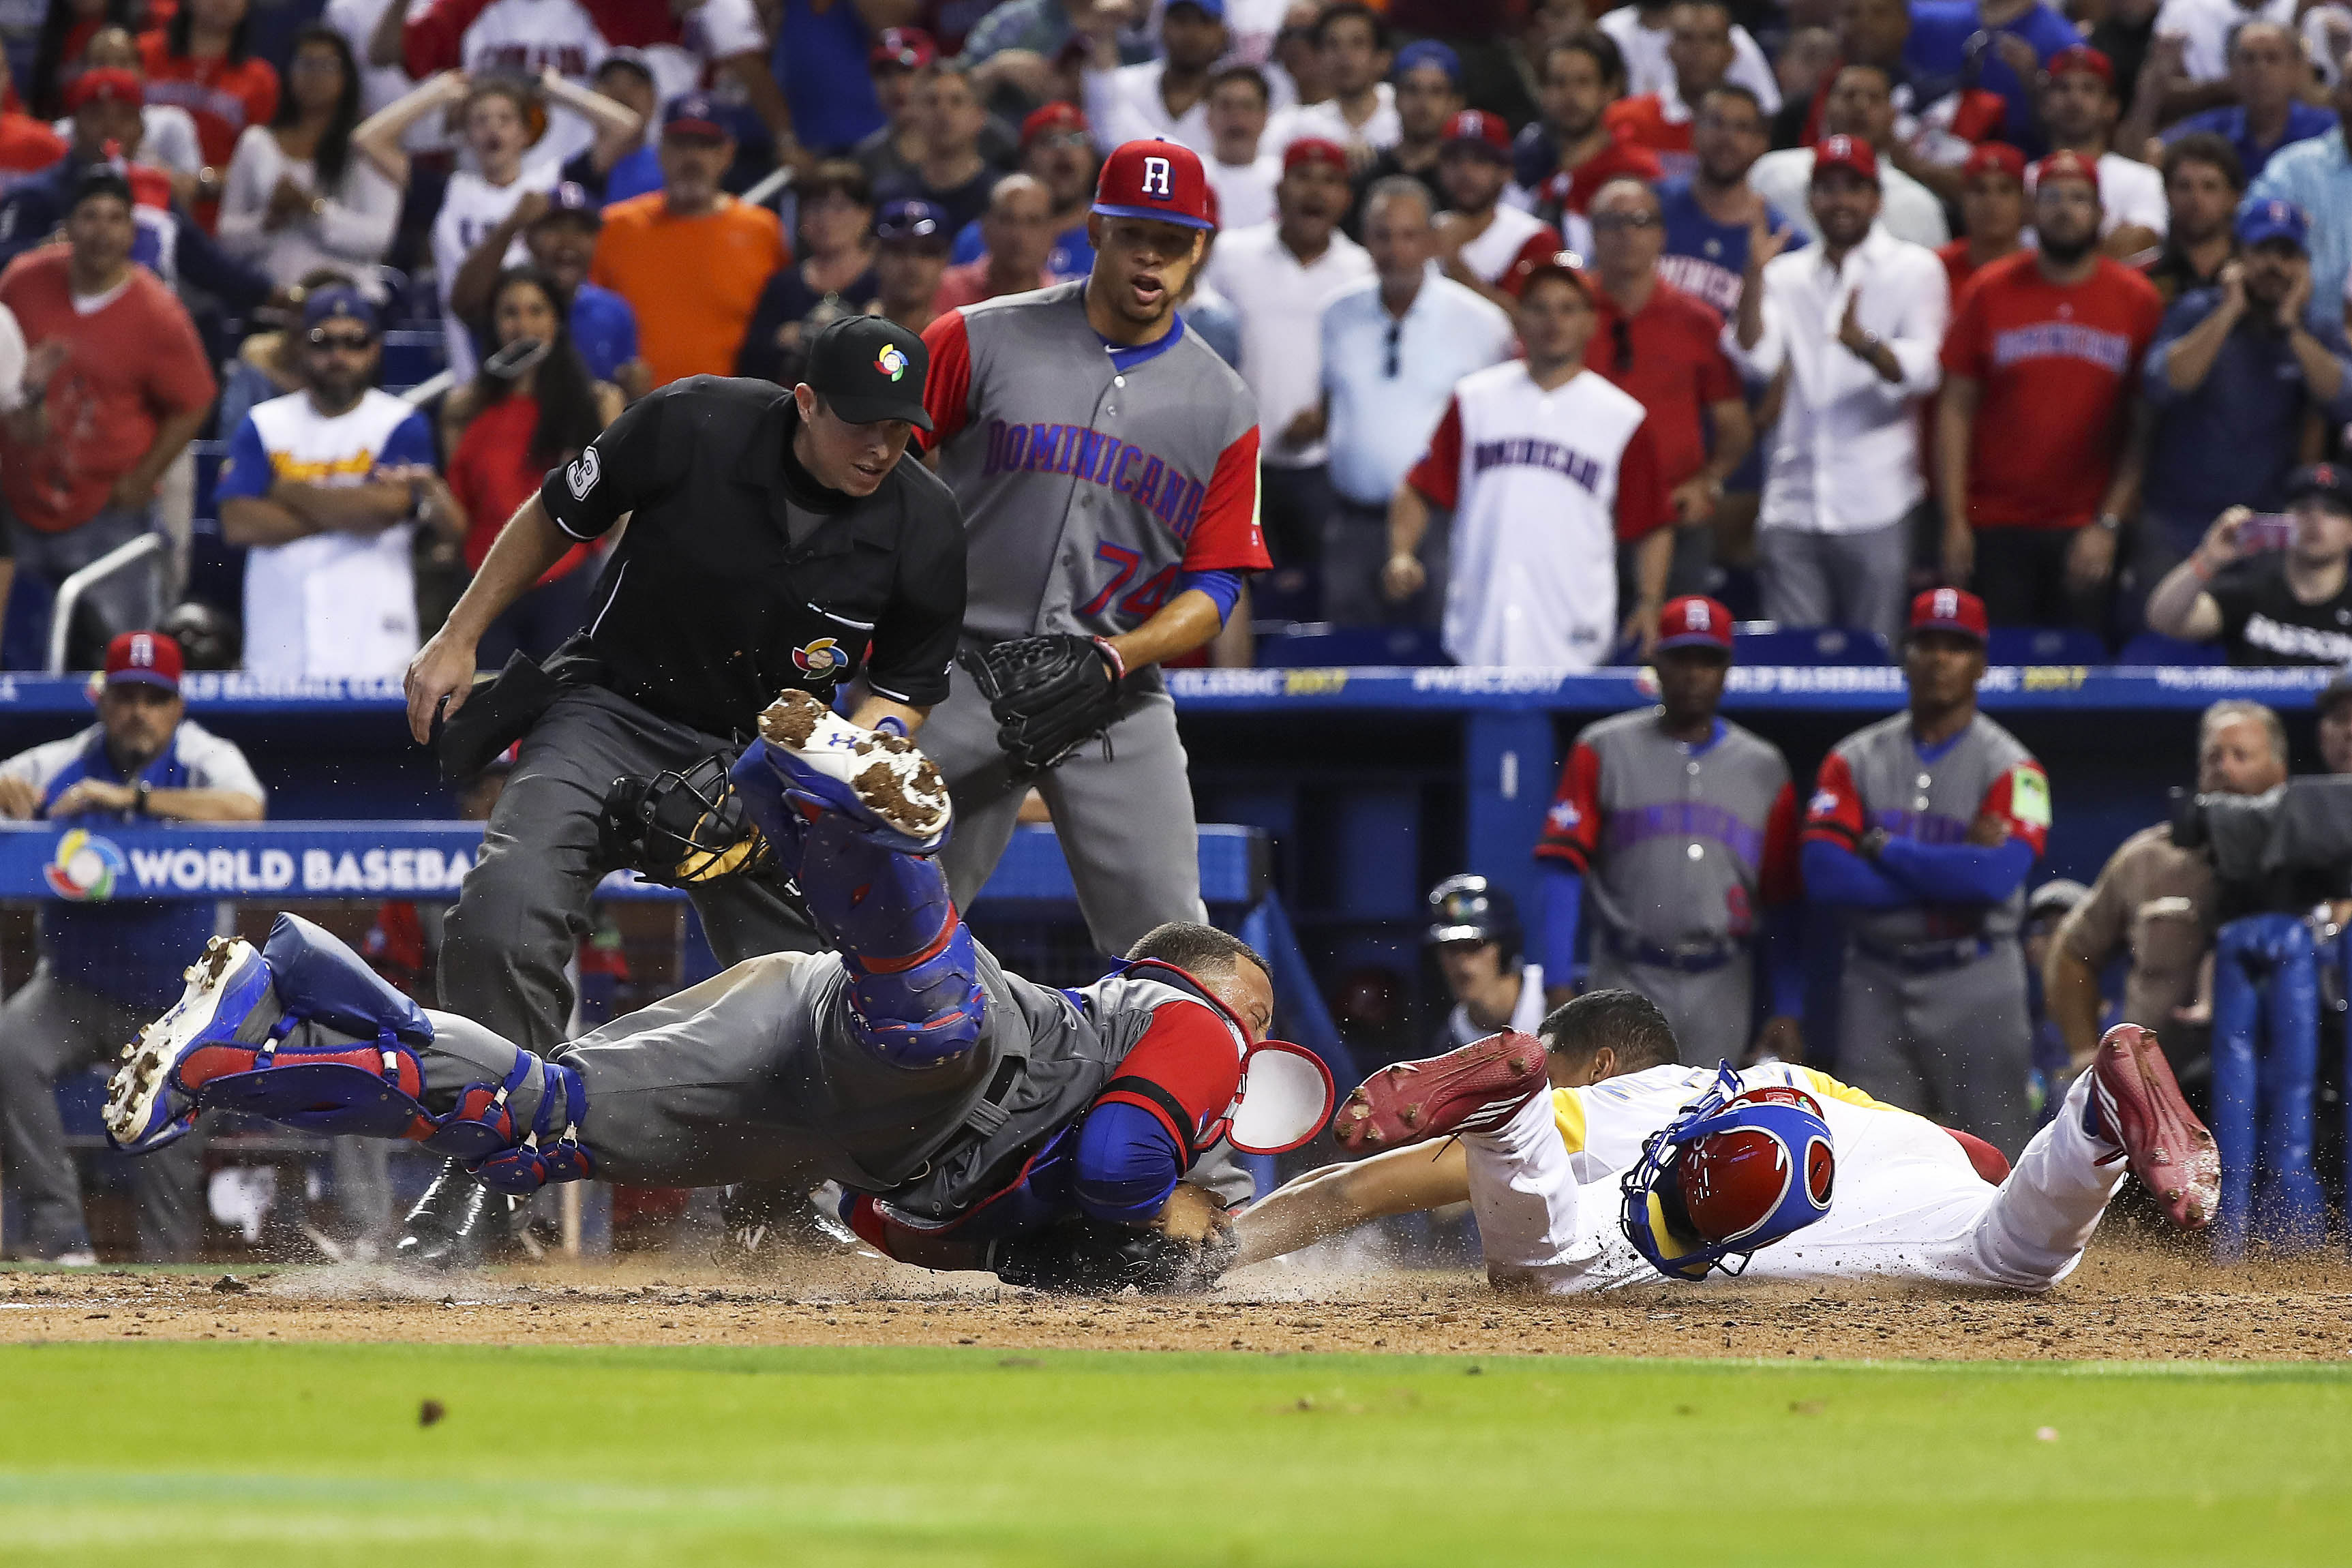 9938014-baseball-world-baseball-classic-dominican-republic-at-colombia